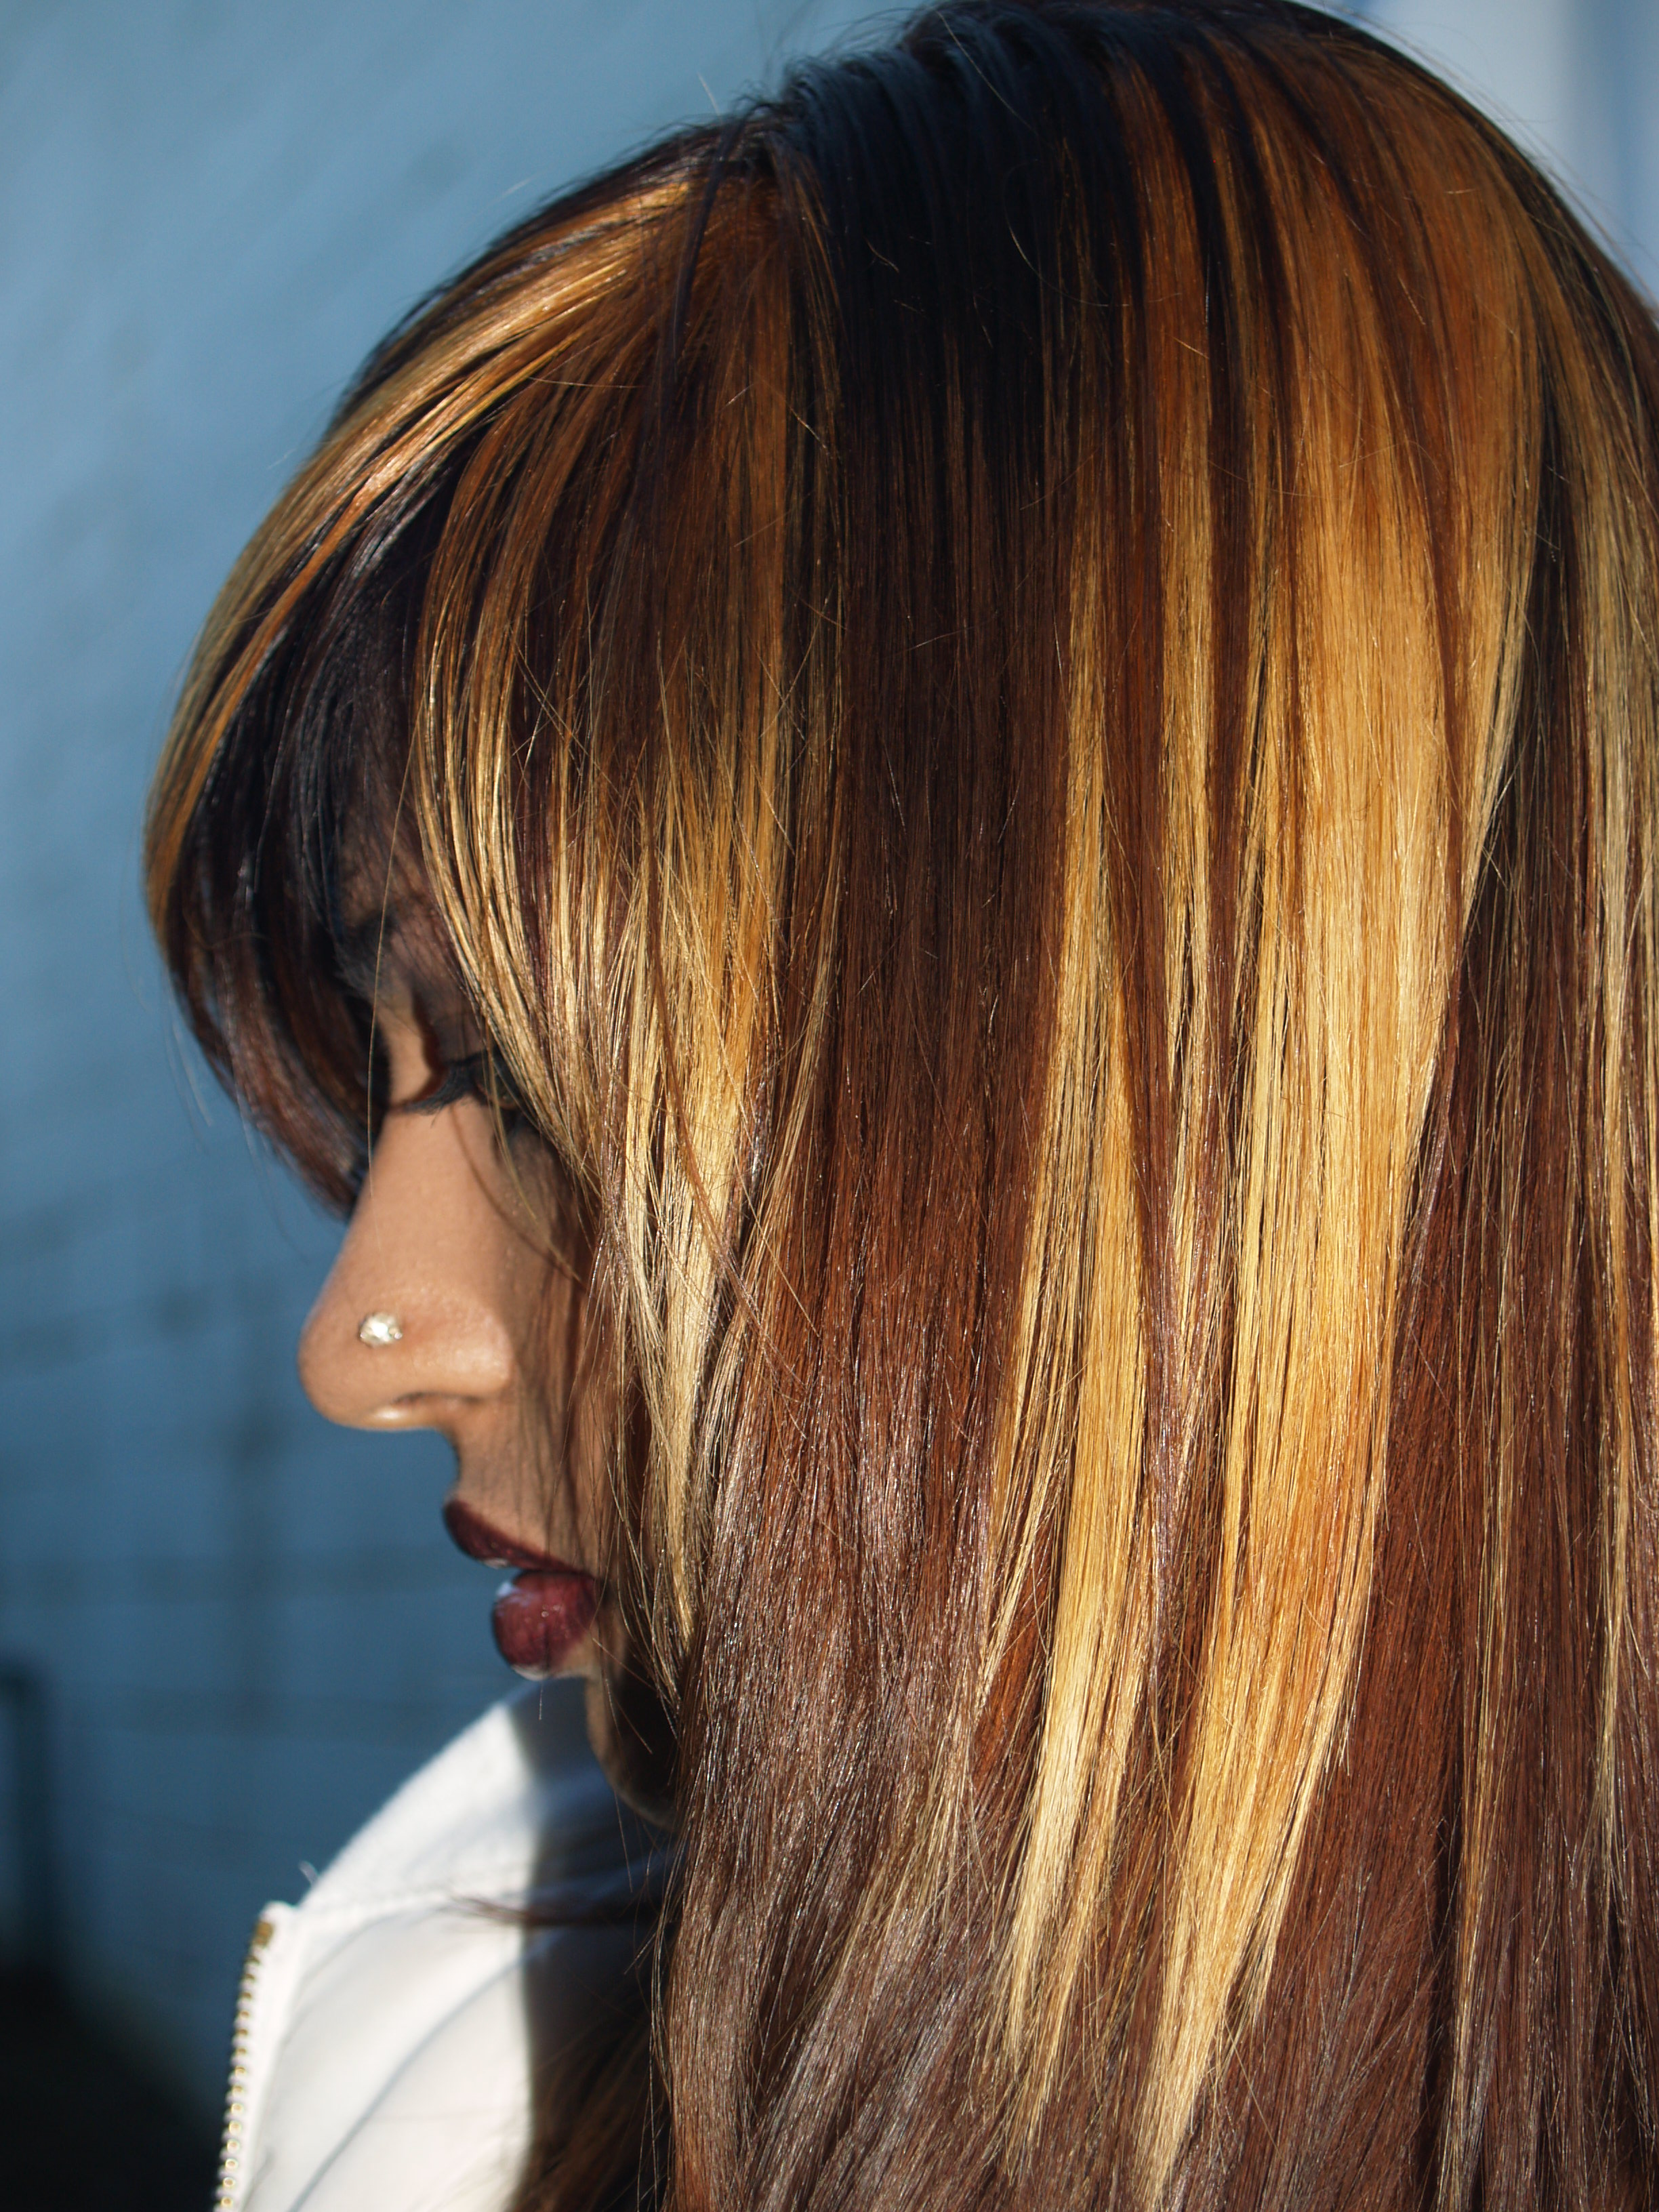 Hair Stylists Stylists Colorists Salonsearch